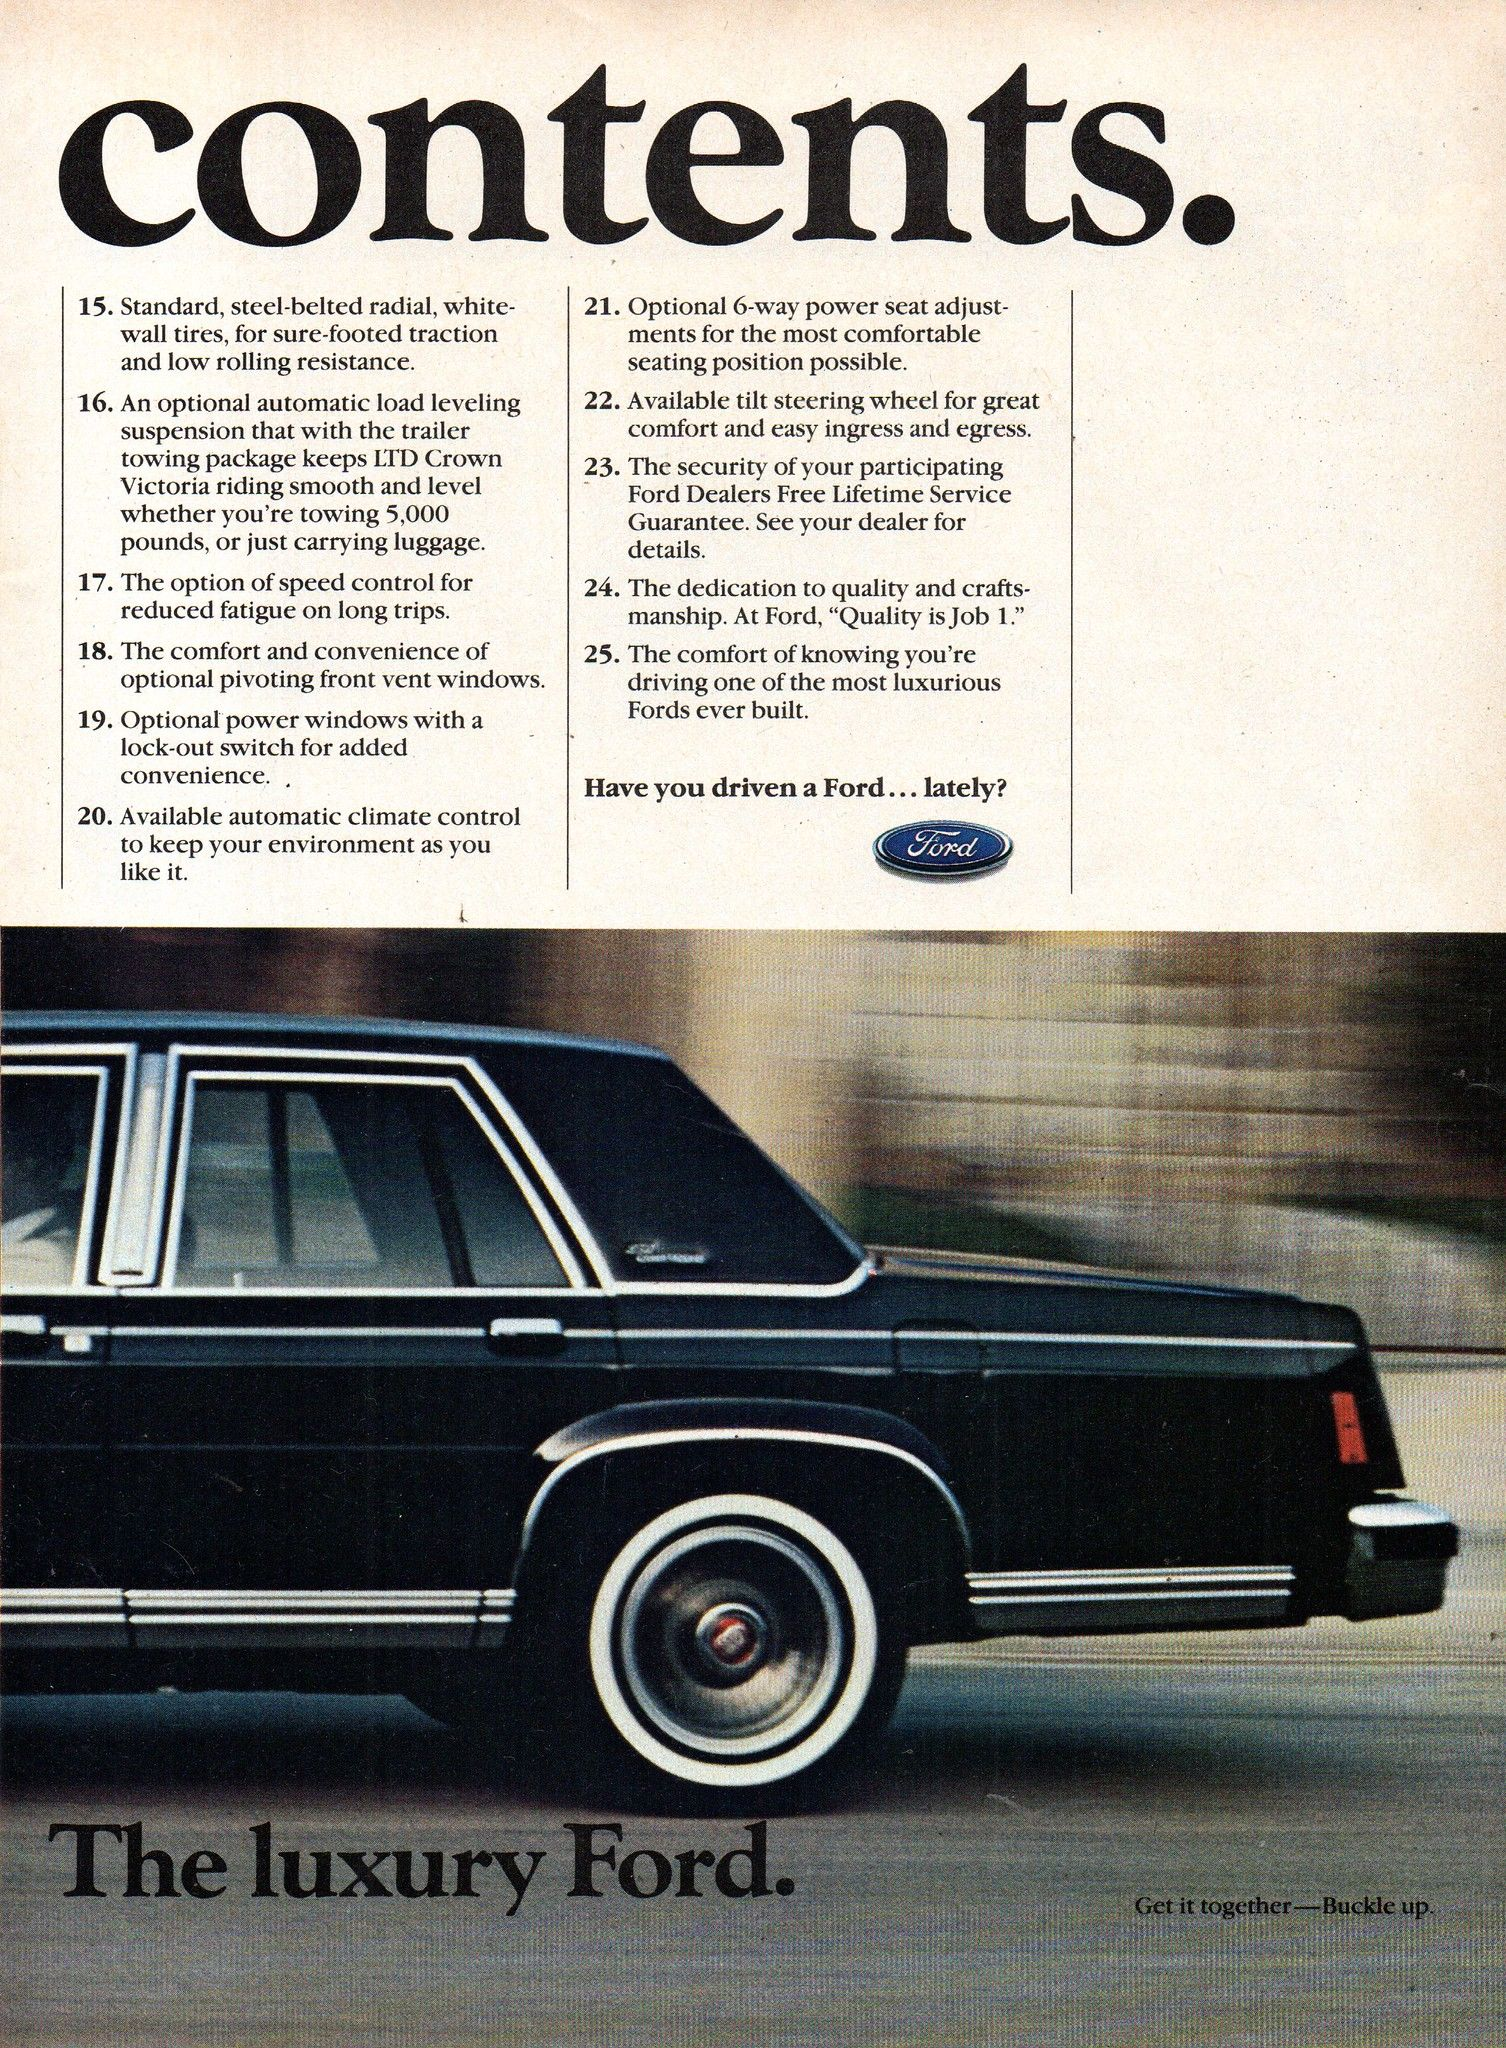 1985 Ford Ltd Crown Victoria Sedan Page 2 Usa Original Magazine